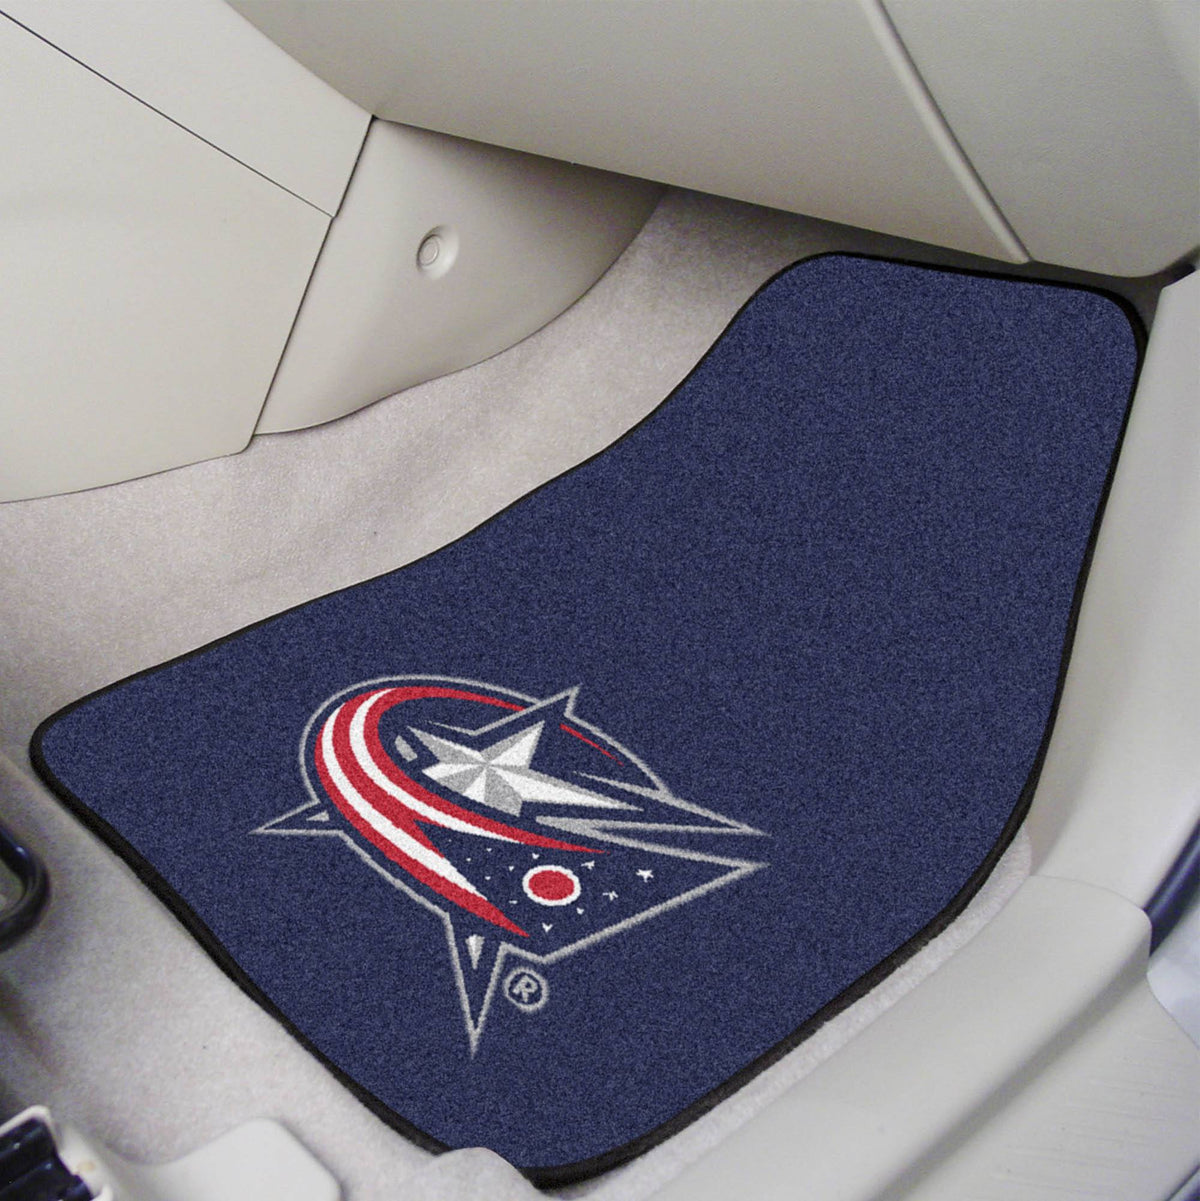 NHL - Carpet Car Mat, 2-Piece Set NHL Mats, Front Car Mats, 2-pc Carpet Car Mat Set, NHL, Auto Fan Mats Columbus Blue Jackets